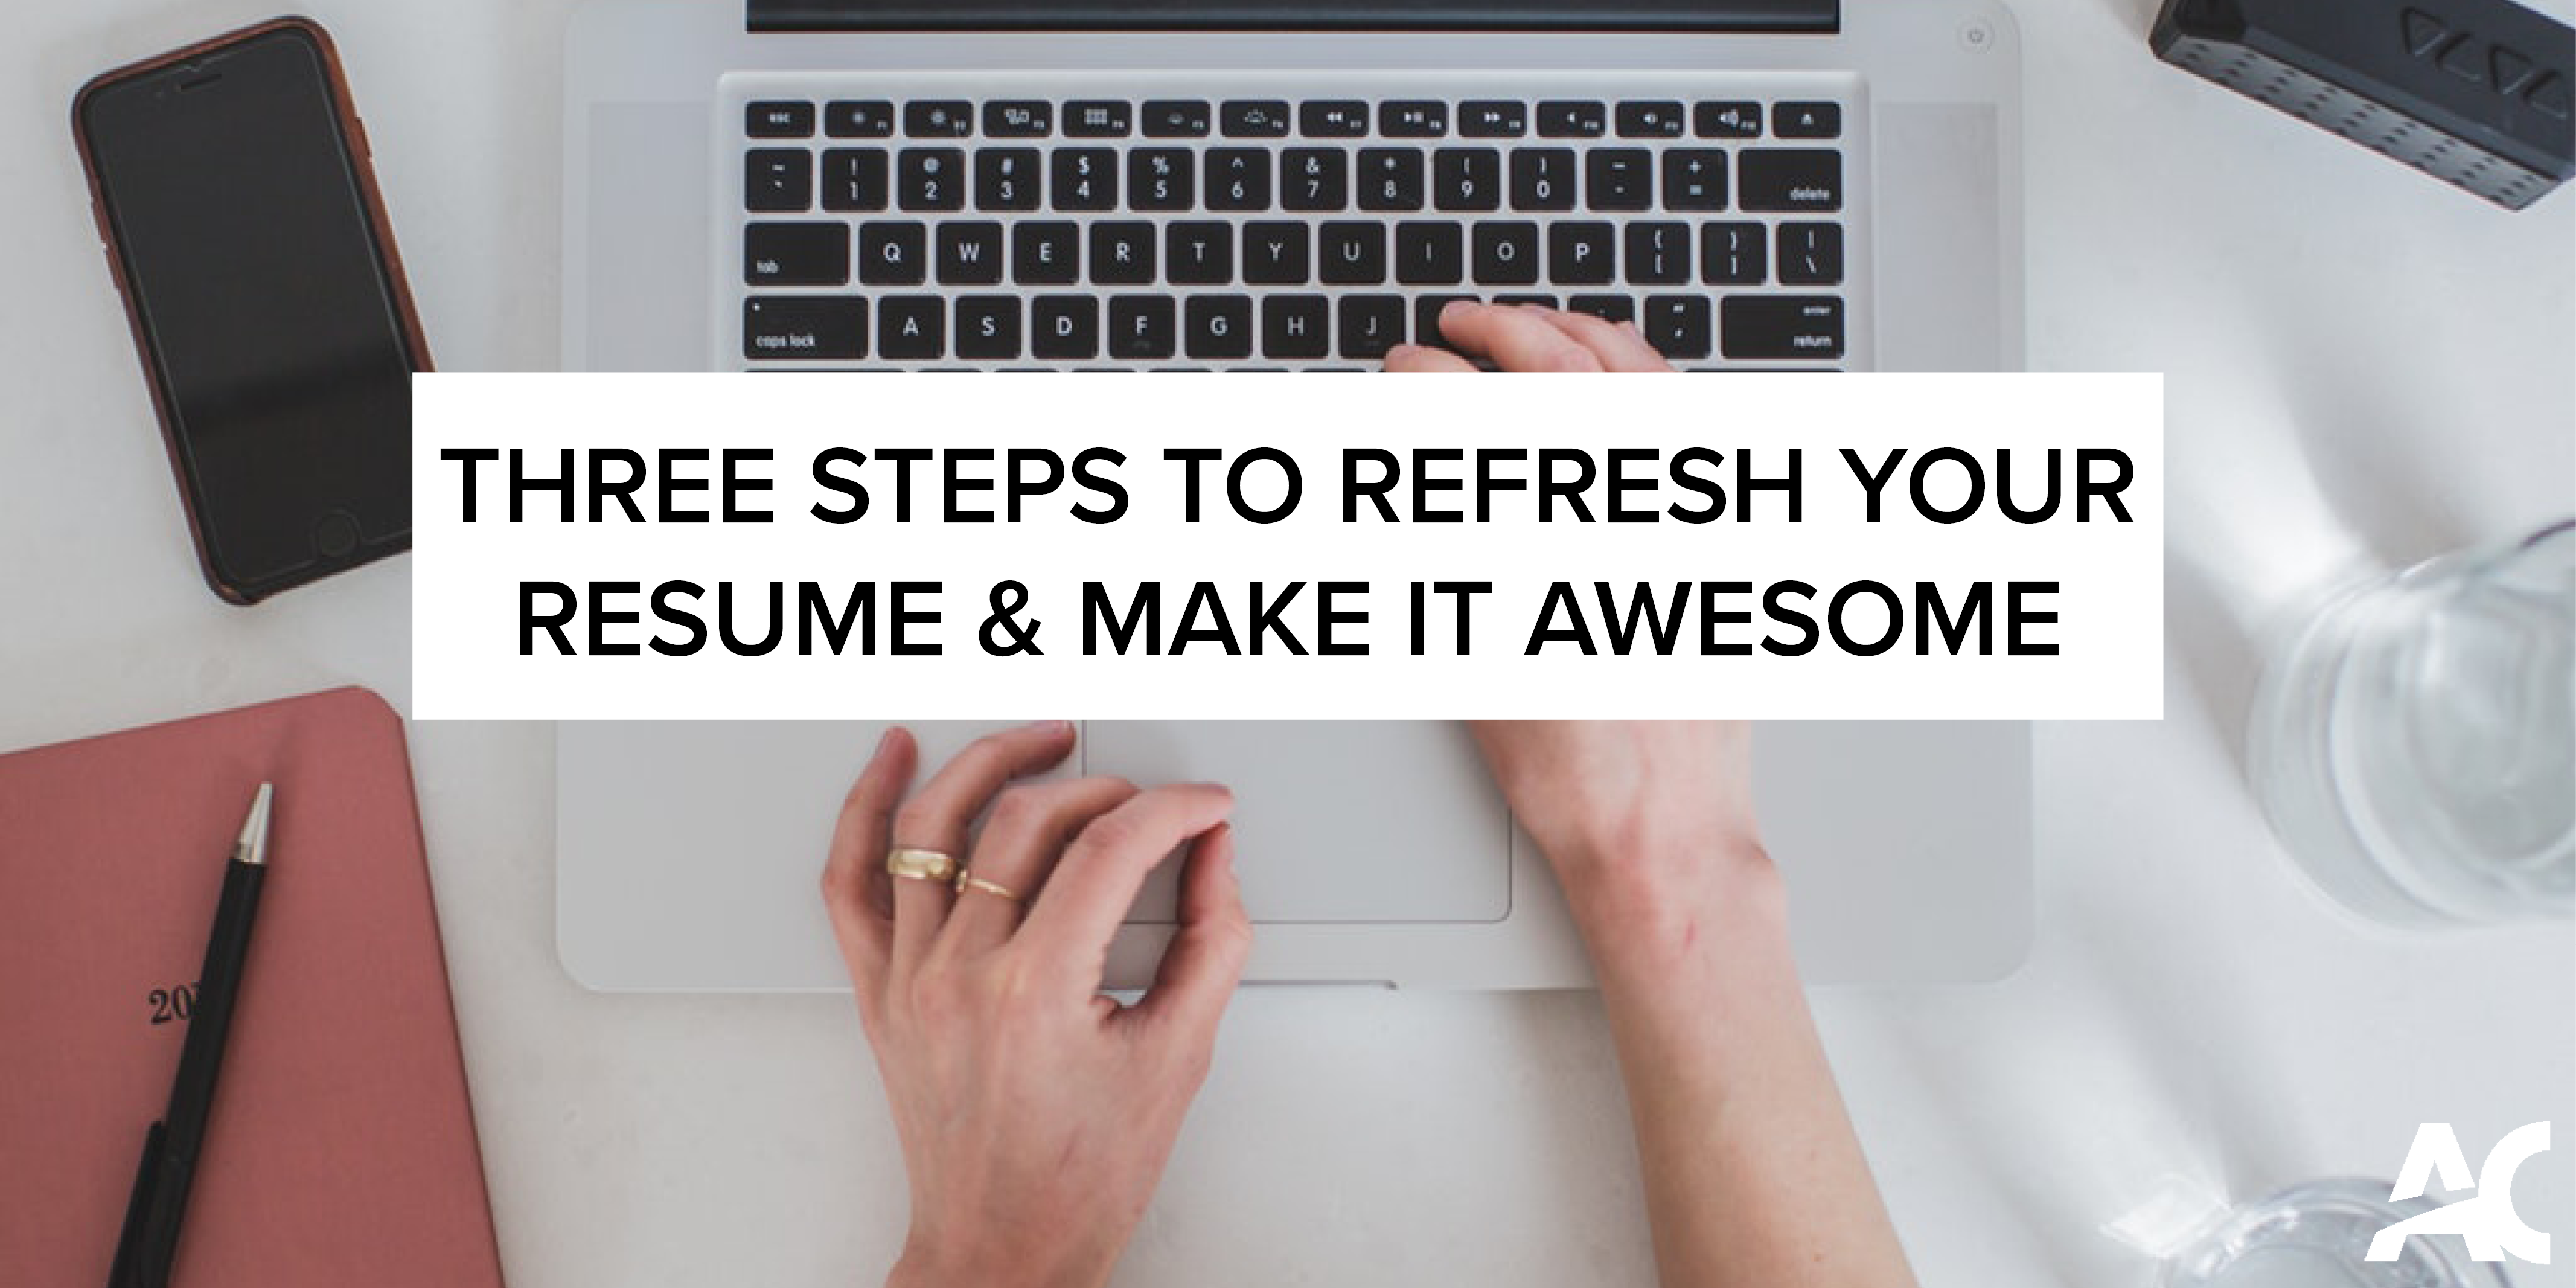 three steps to refresh your resume and make it awesome cooperative